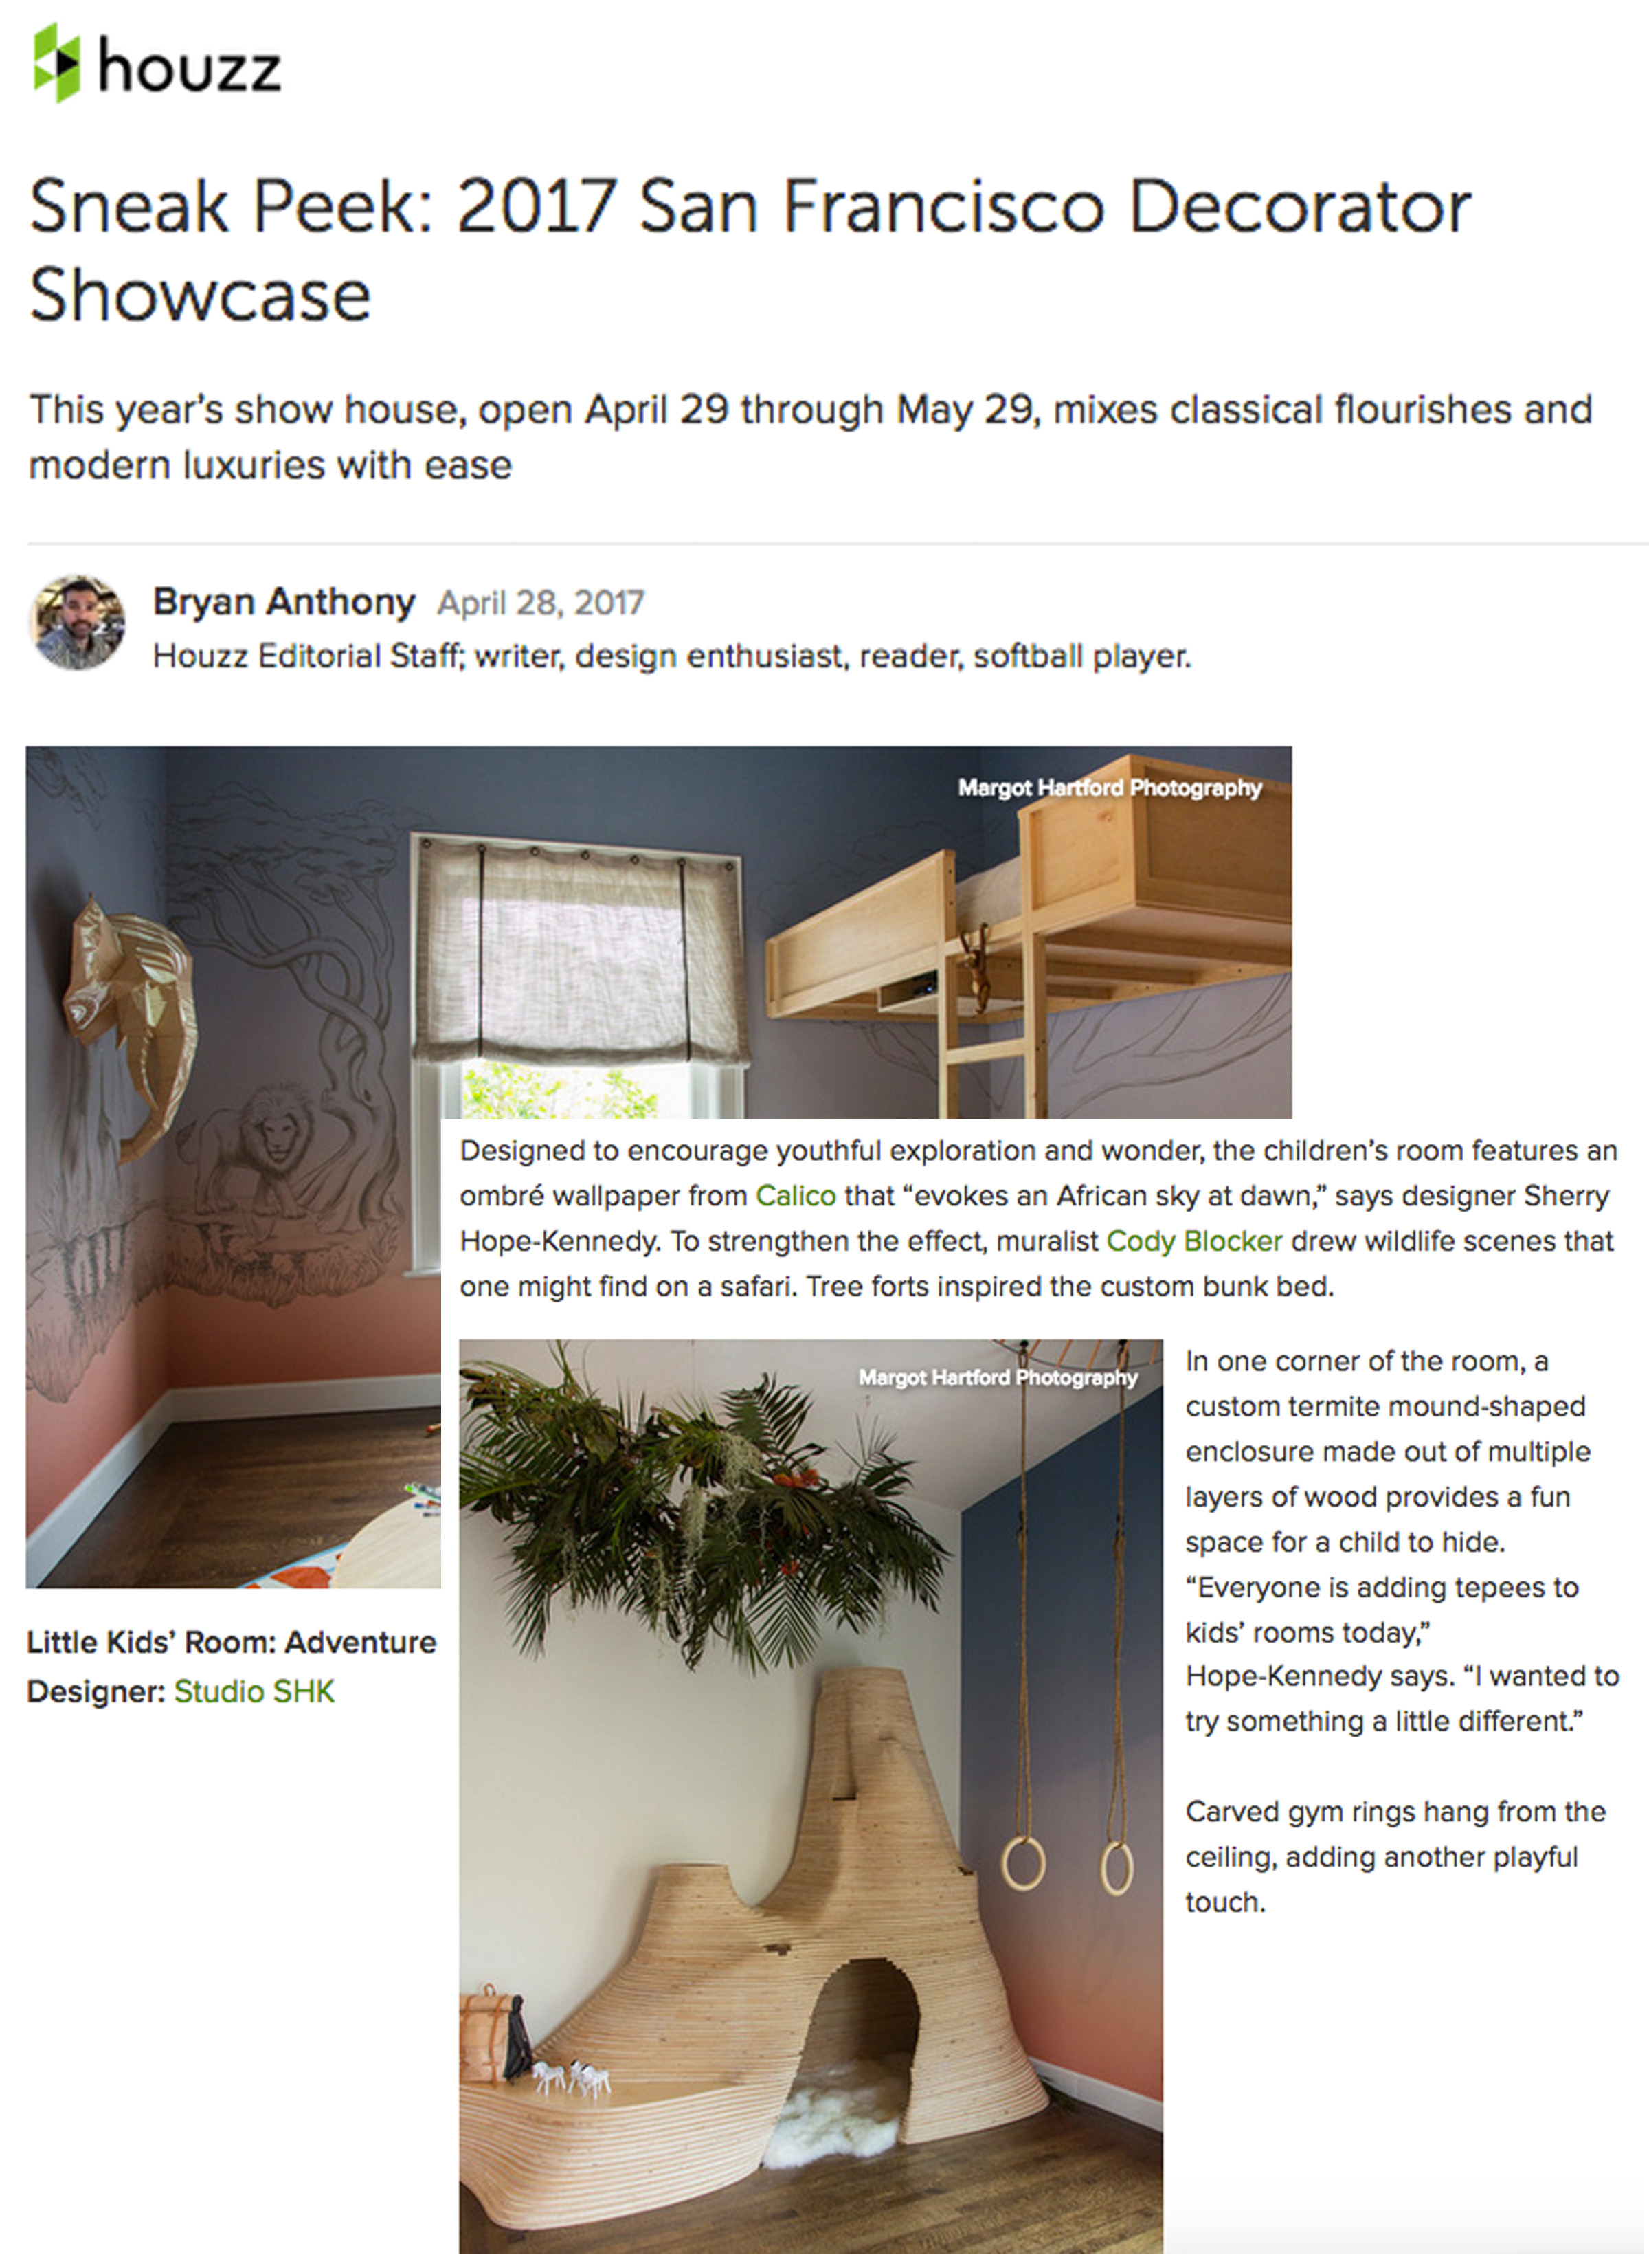 Houzz - Our room is featured in Houzz's sneak peek of the SF Decorator Showcase. Link: http://bit.ly/2q46TVA